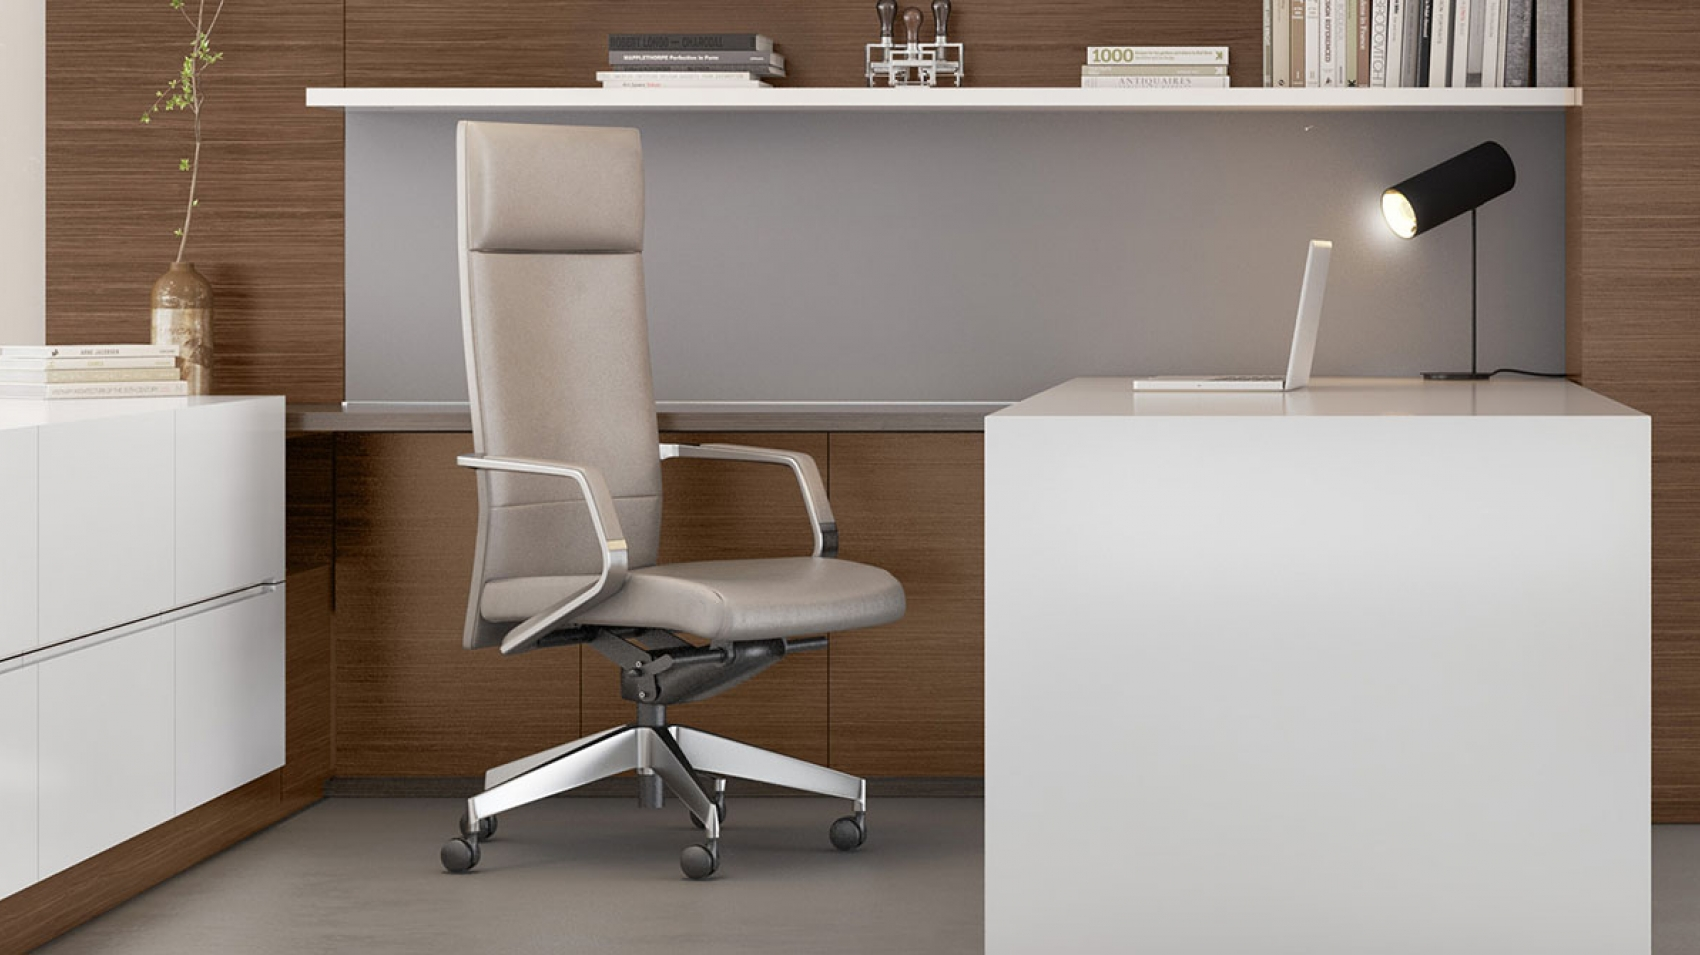 Ofs Office Furniture Property Pur  Ofs